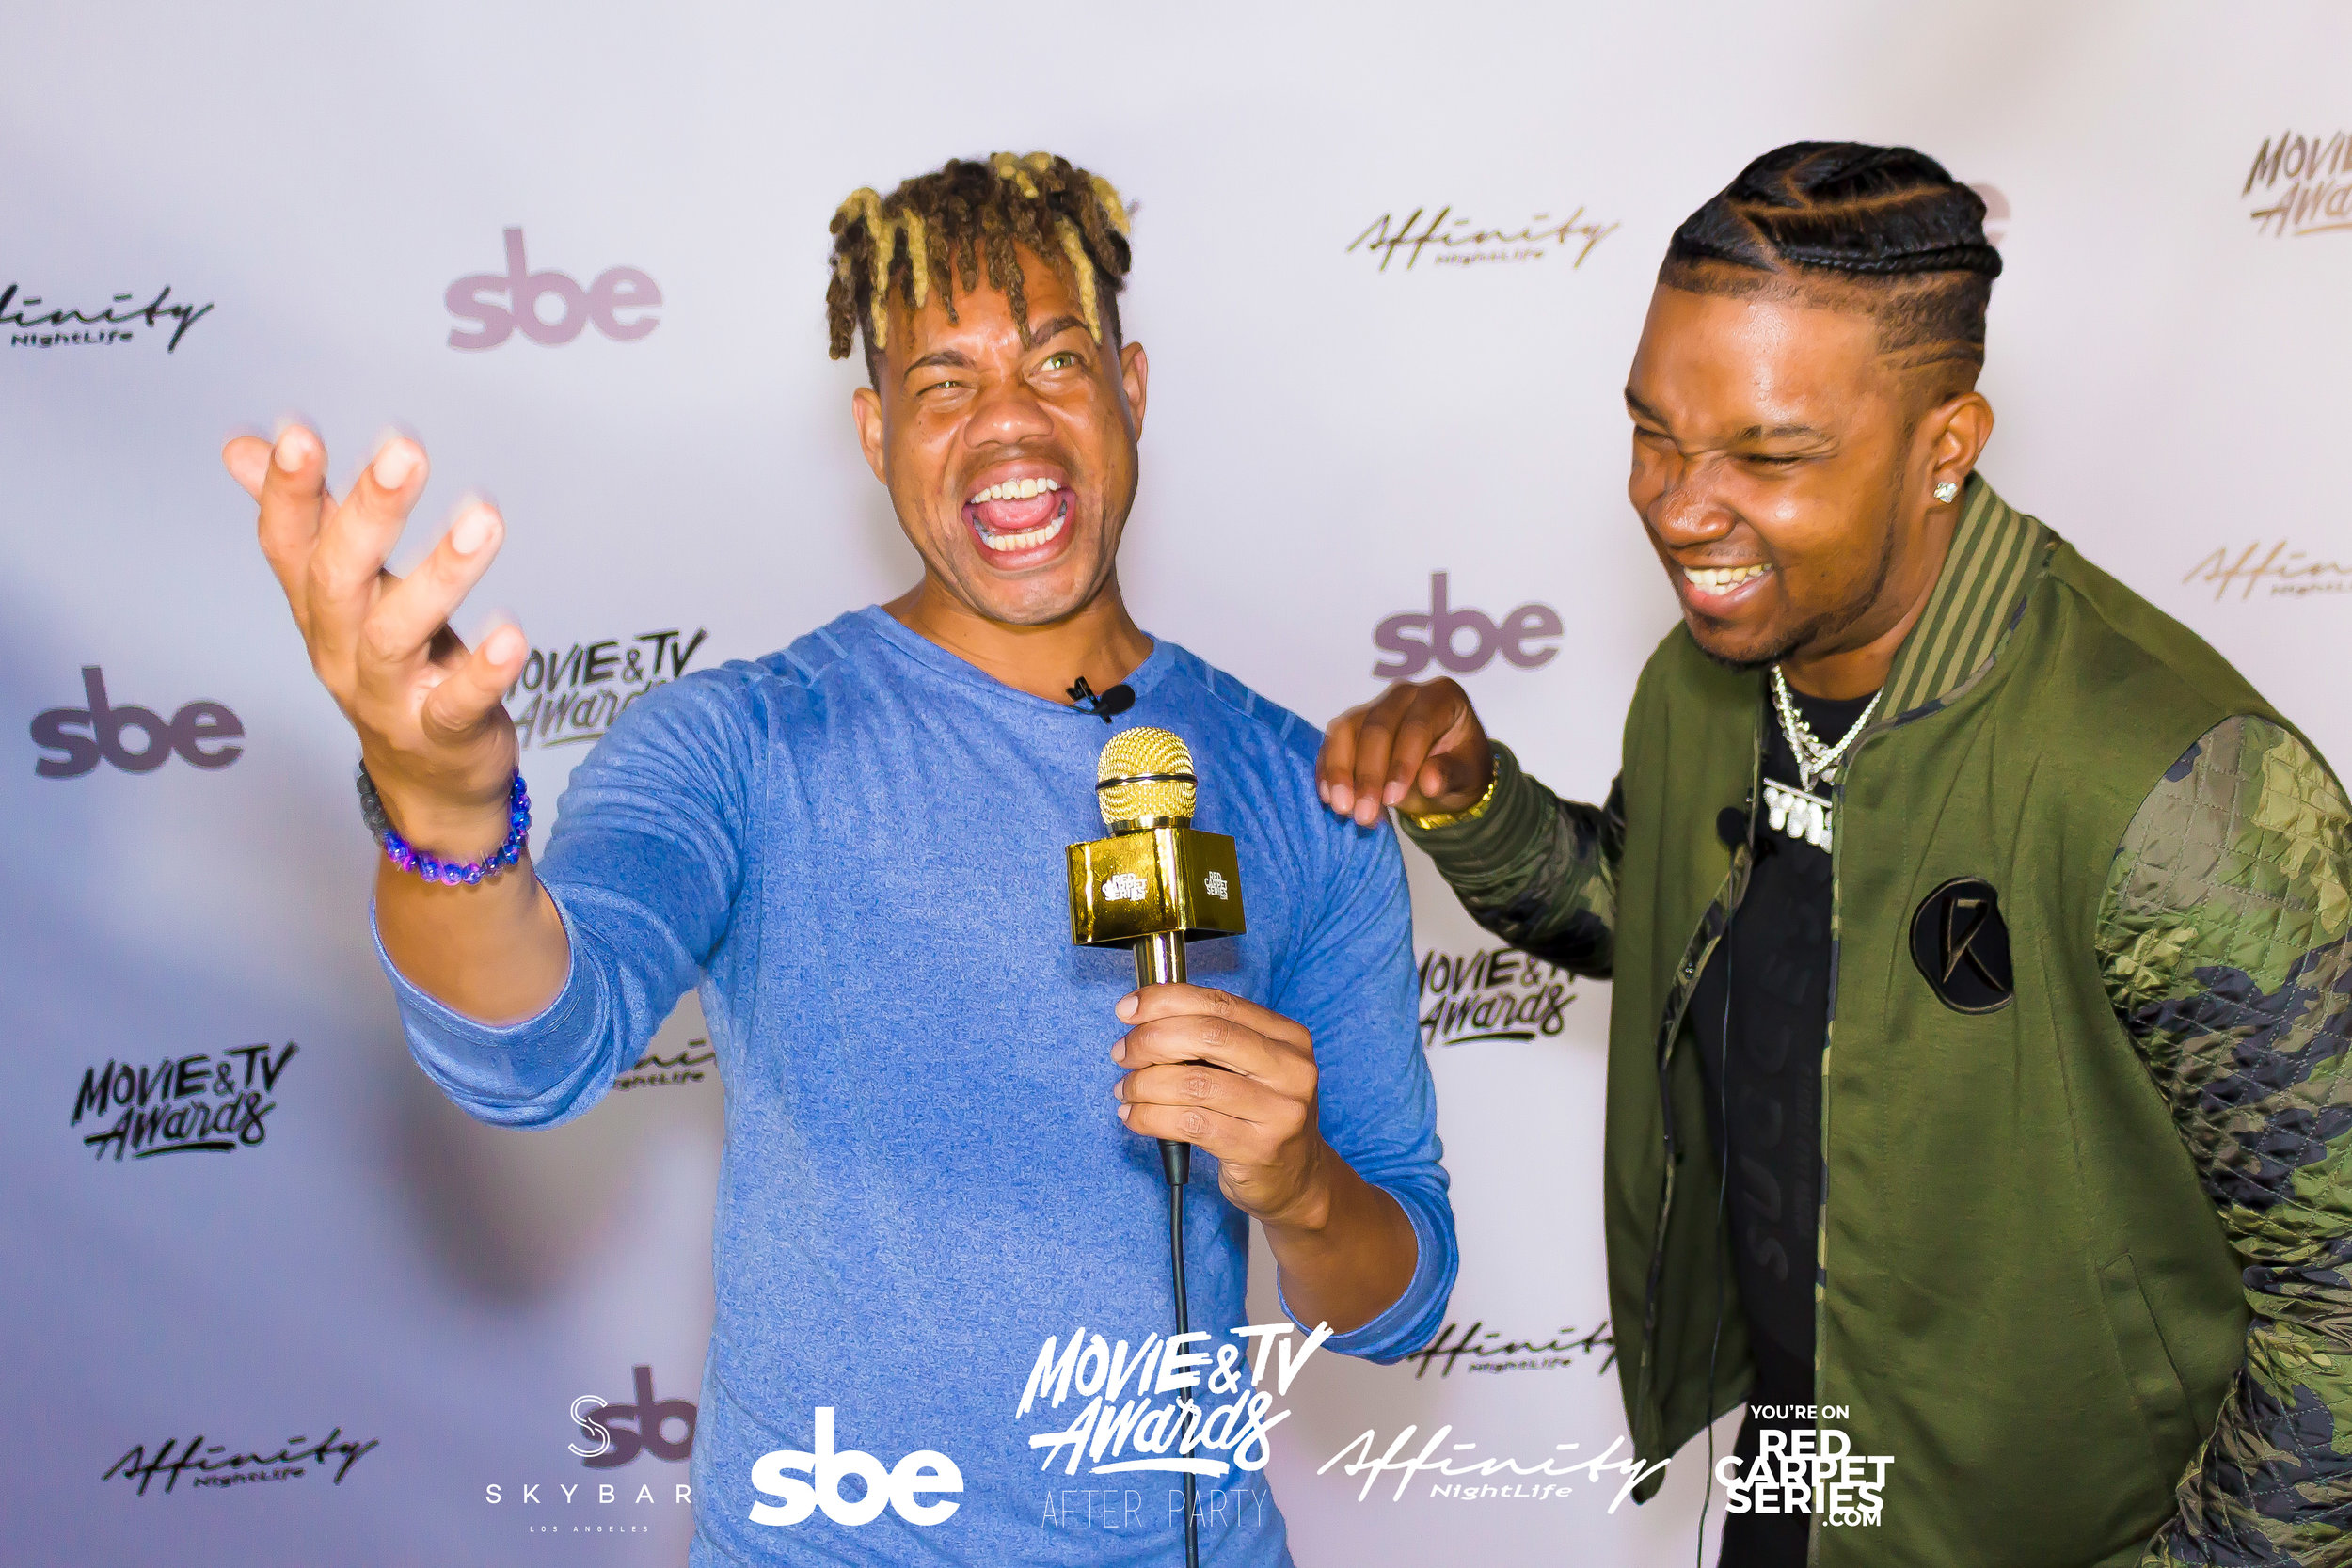 Affinity Nightlife MTV Movie & TV Awards After Party - Skybar at Mondrian - 06-15-19 - Vol. 1_81.jpg